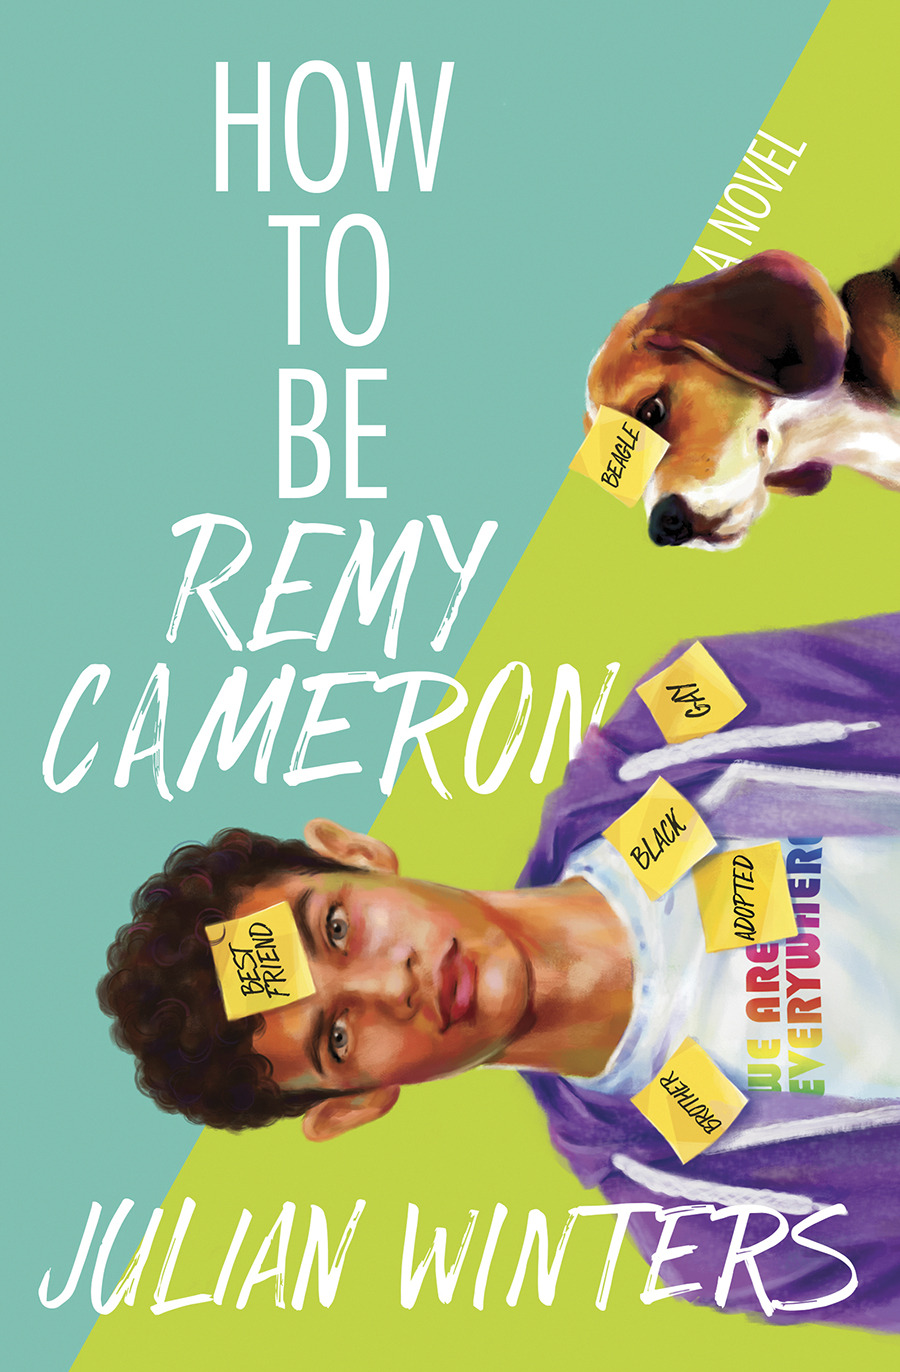 julian winters, how to be remy cameron